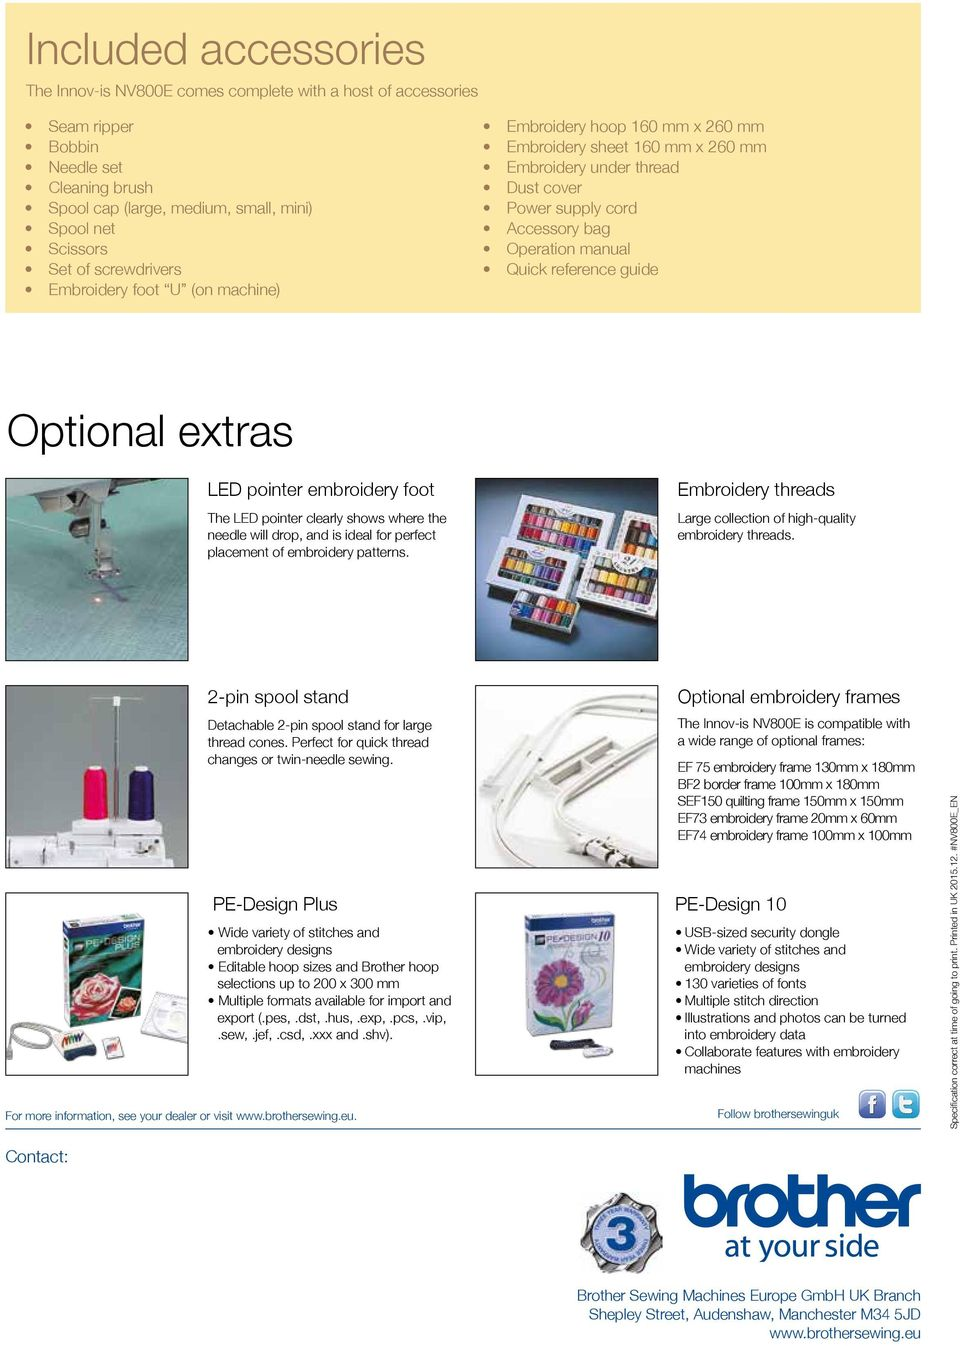 reference guide Optional extras LED pointer embroidery foot The LED pointer clearly shows where the needle will drop, and is ideal for perfect placement of embroidery patterns.